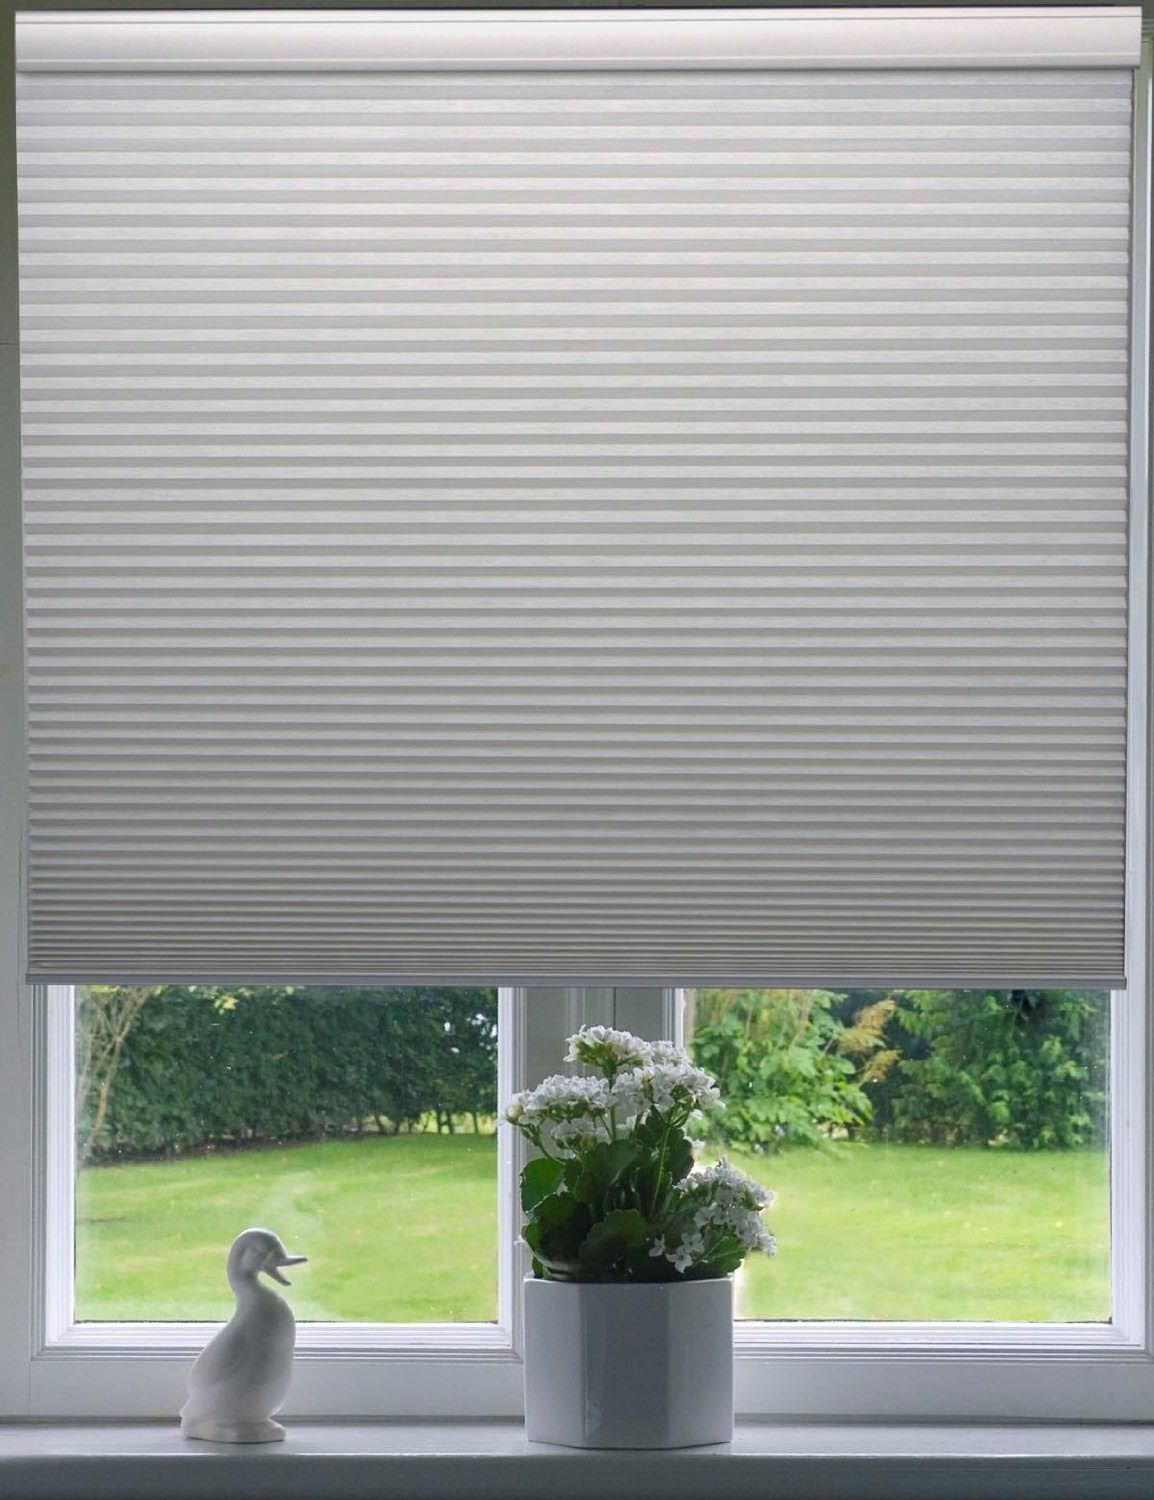 Cordless Honeycomb Window Blinds Cellular Shades Honeycomb Blinds Cordless Cellular Shades